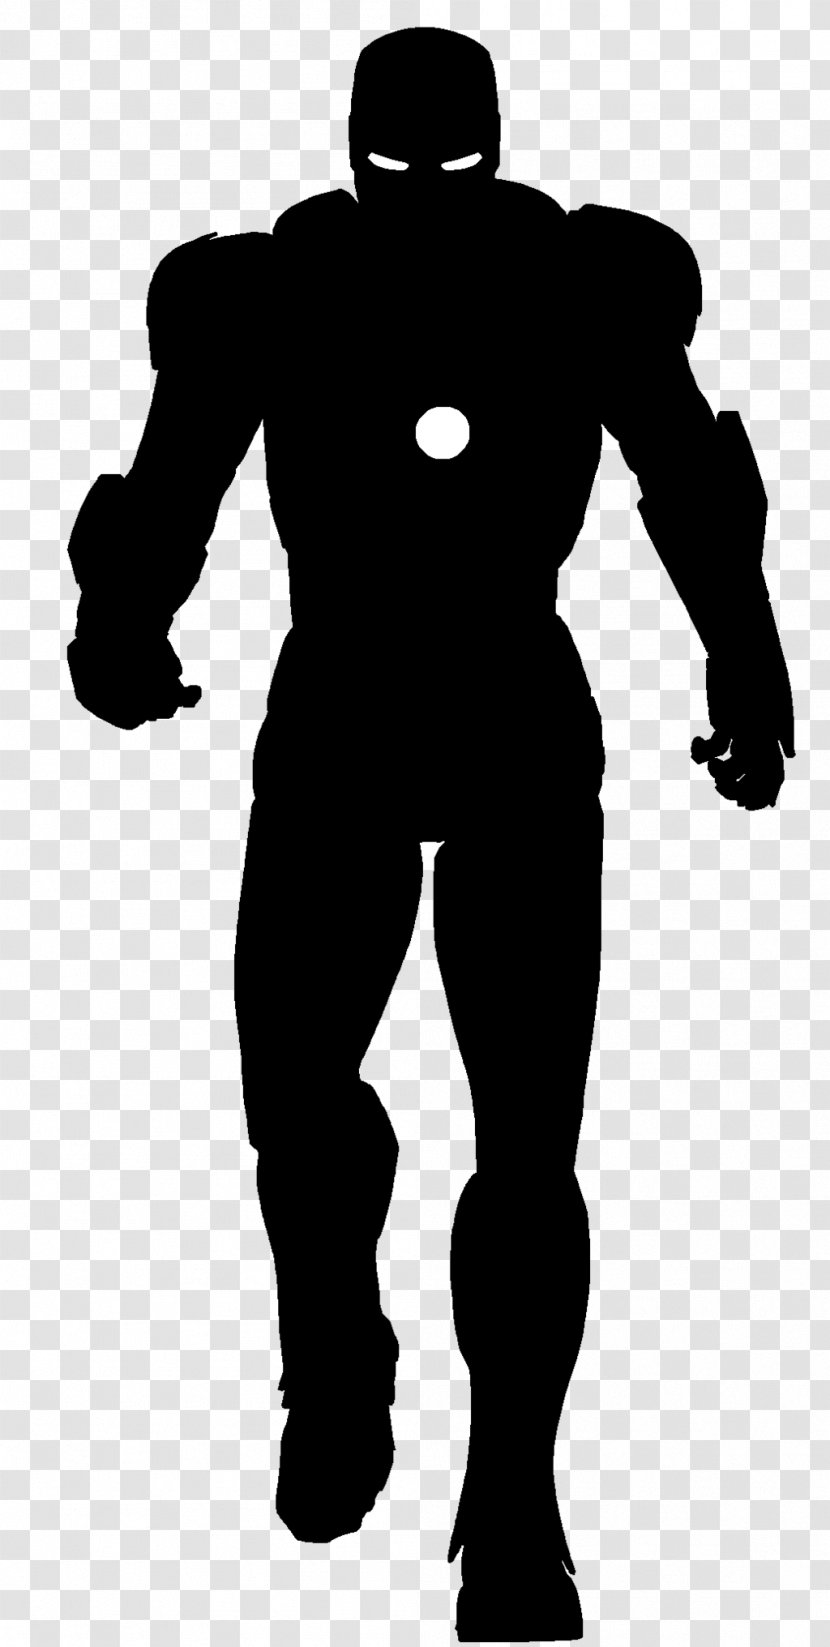 Iron Man Silhouette Superhero Drawing Transparent Png Free download 29 best quality floating man silhouette at getdrawings. iron man silhouette superhero drawing